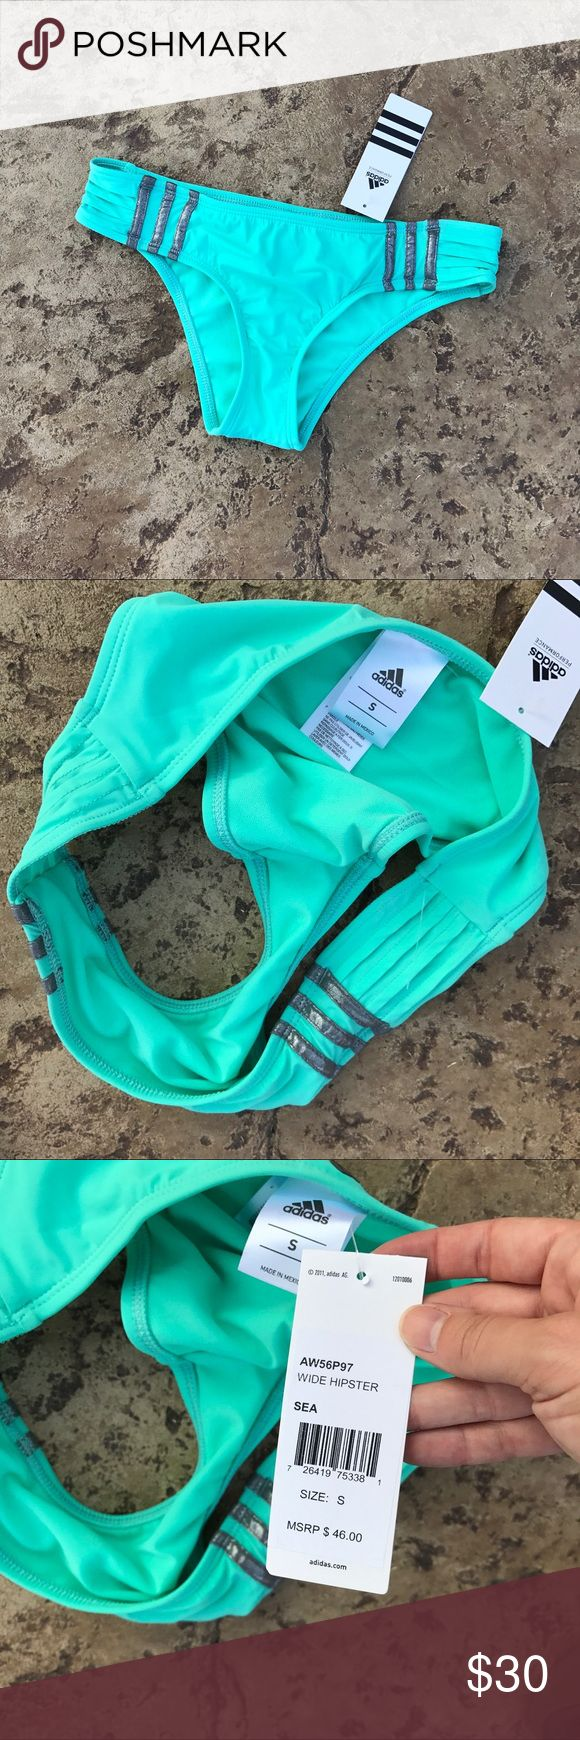 Adidas Sea Green Metallic 3 Stripe Hipster Bottoms The swimsuit of dreams is what you'll be calling this when you add it to your summer collection. Made out fashionable and functional materials that bend and move with you, you'll be ultra-stylish and sleek whenever you throw the Adidas Pleat of Dreams Wide Hipster on for the water. adidas Swim Bikinis